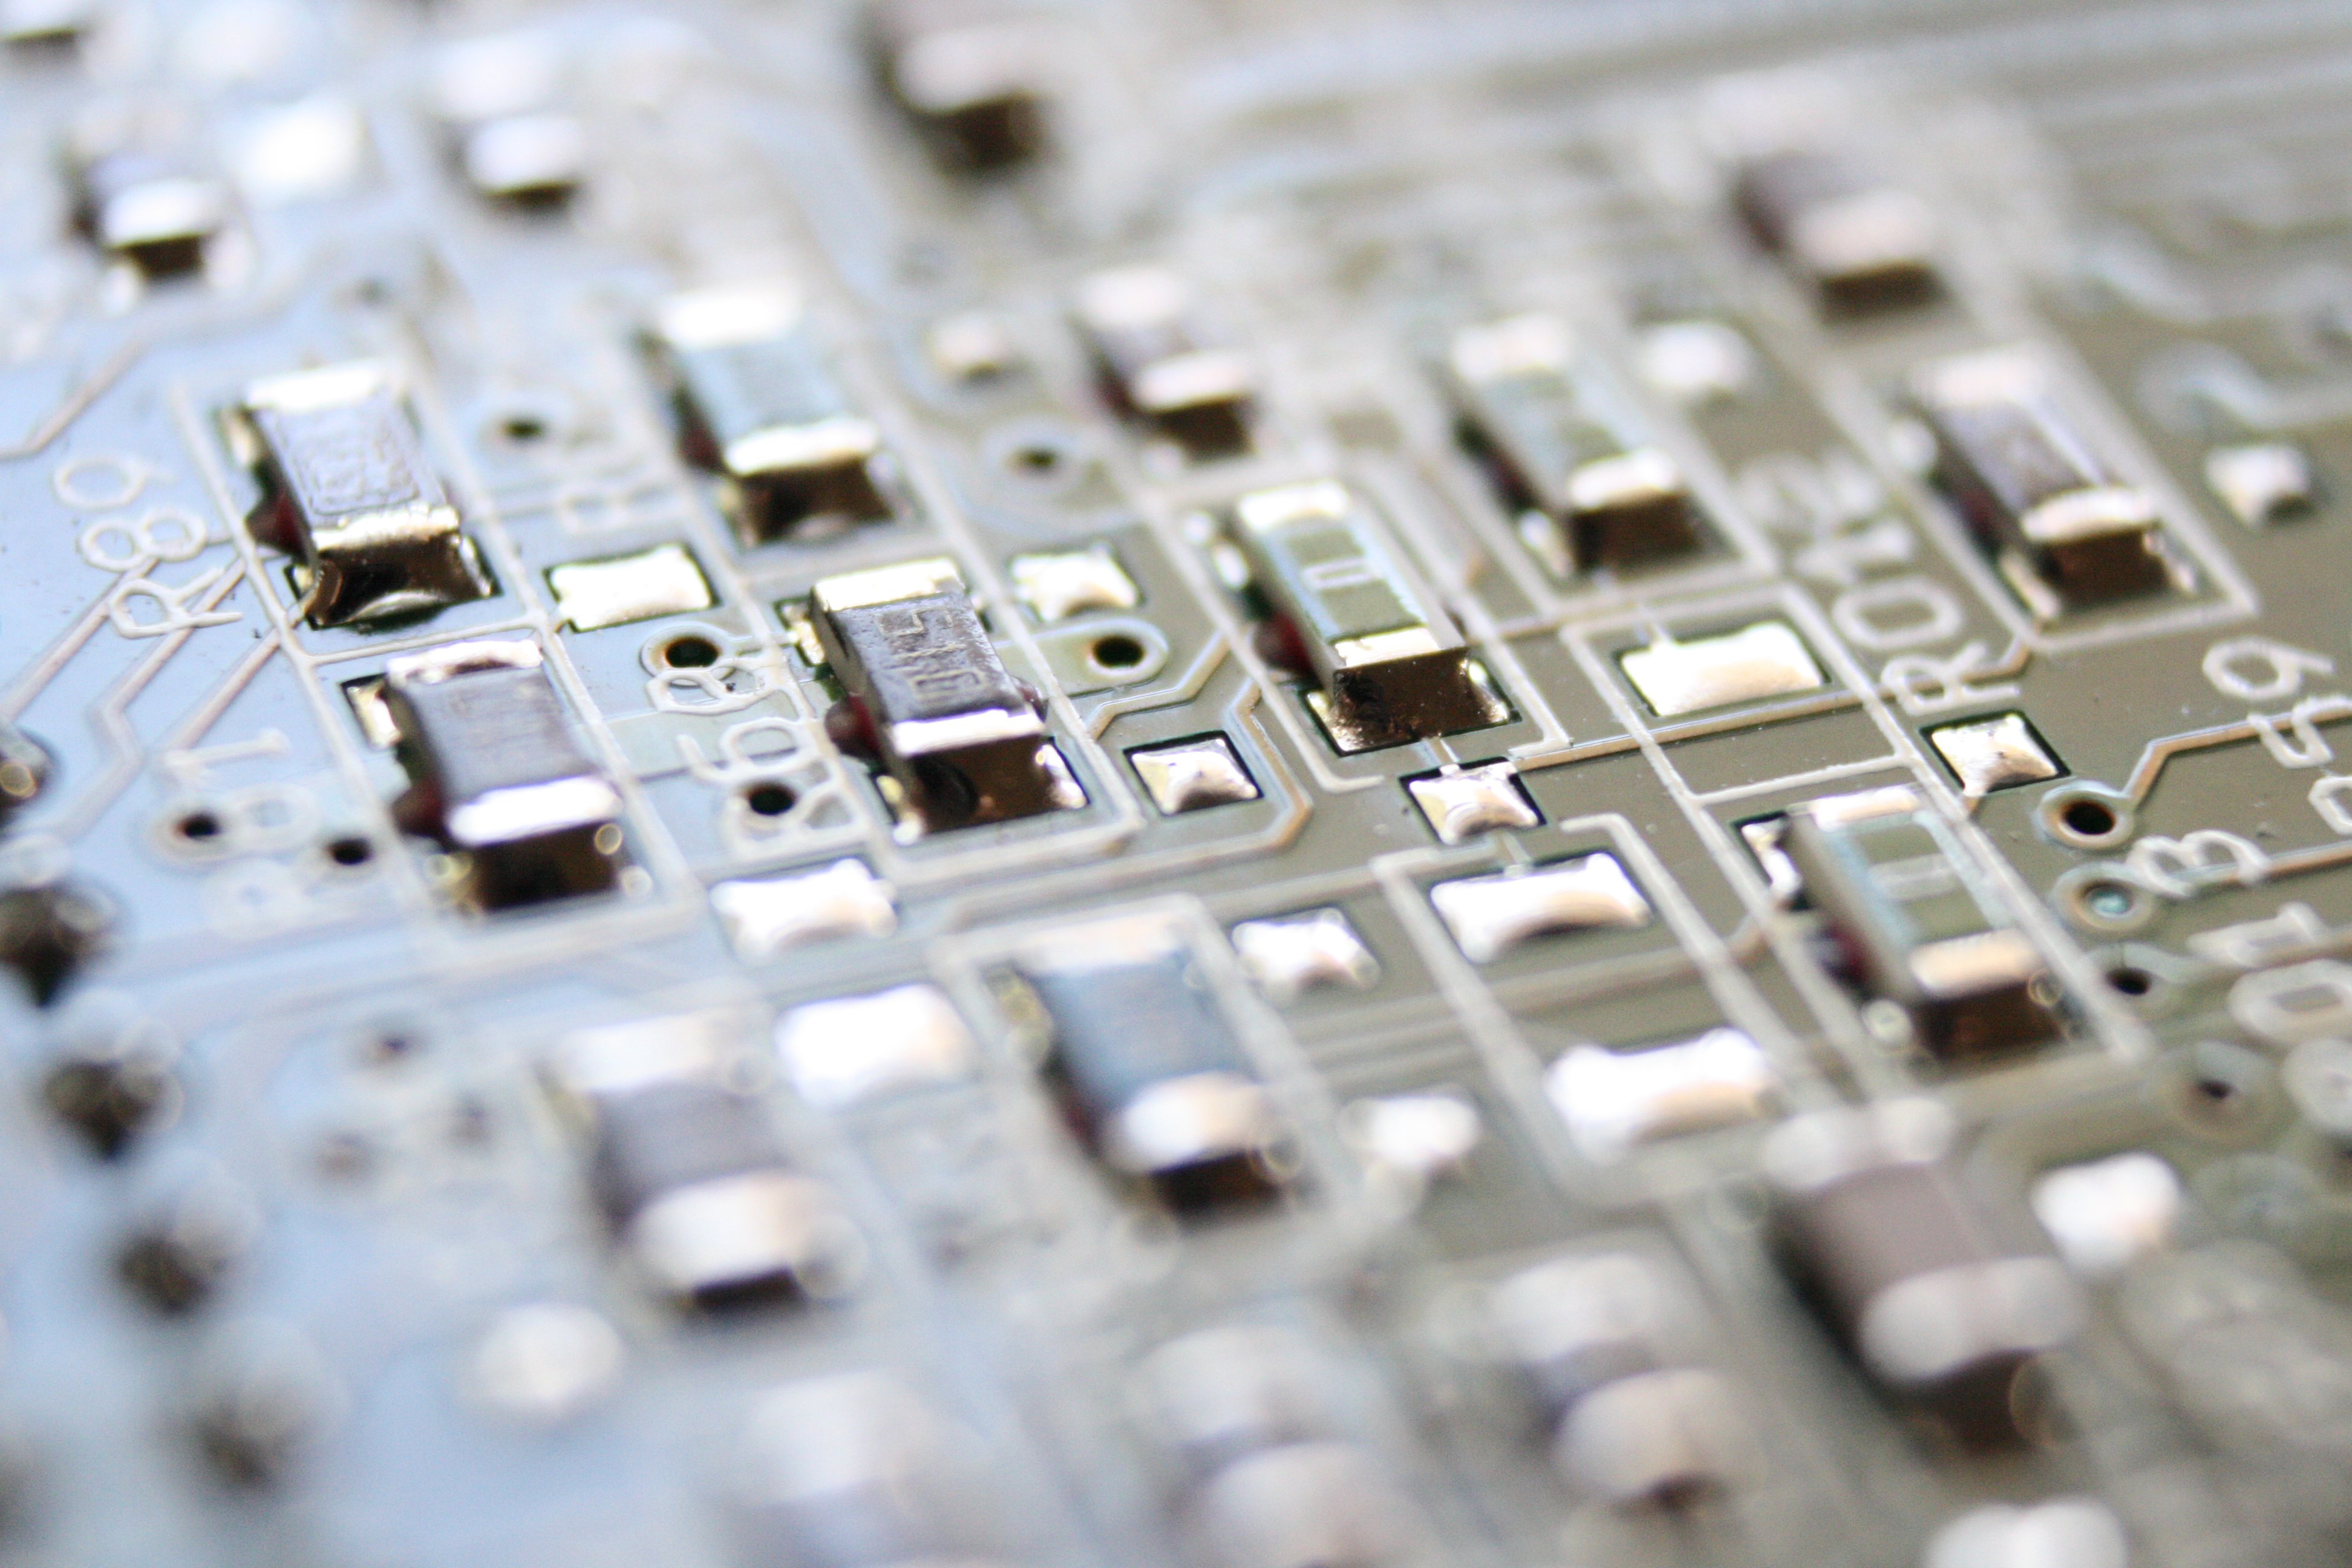 Integrated Circuit Board Macro Picture